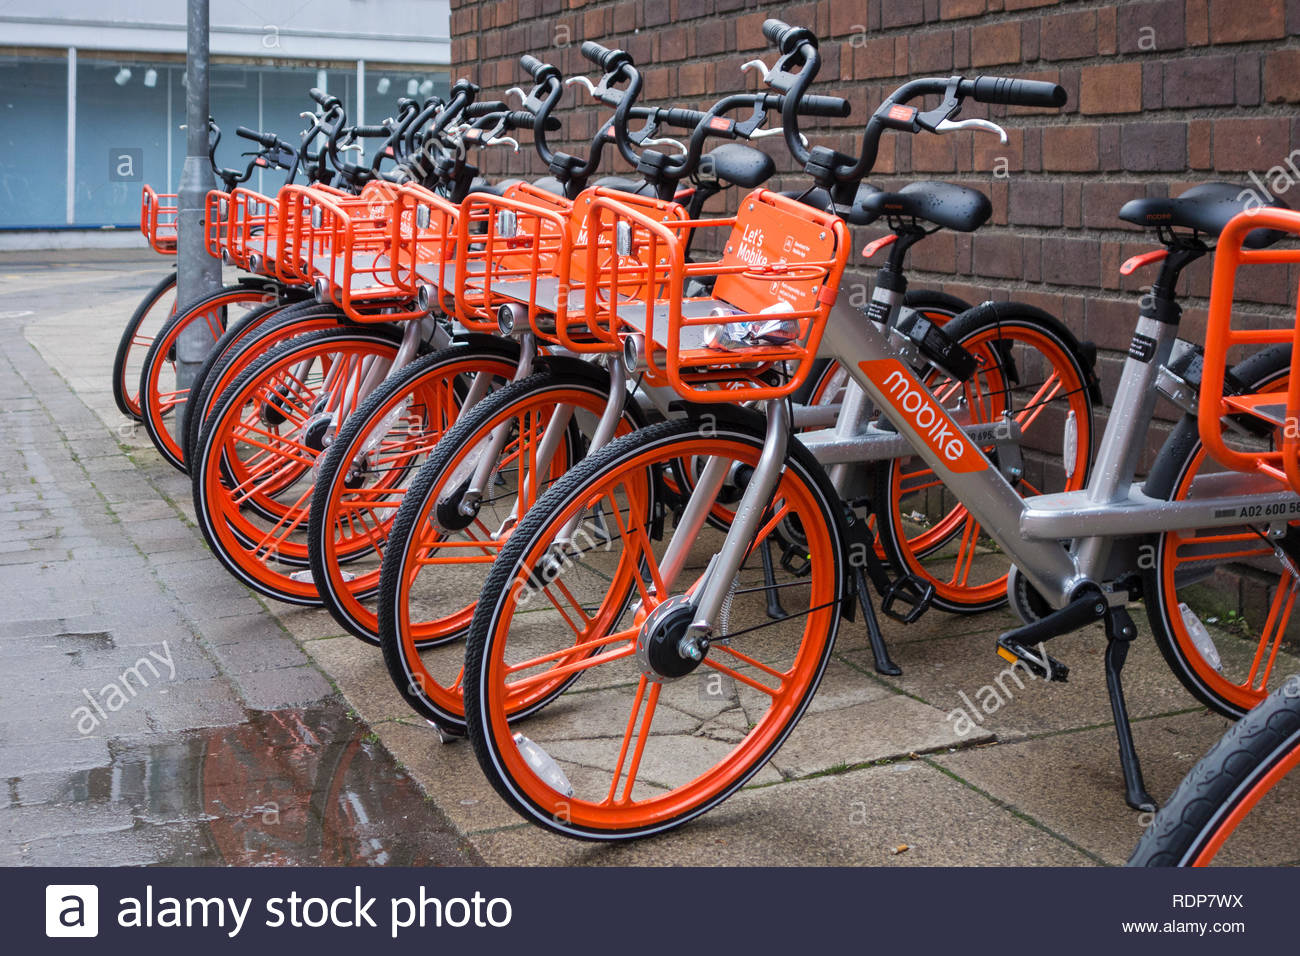 Mobike rental bikes parked ready for customers in Cambridge, Cambs, Cambridgeshire, England, UK. A dockless bikesharing scheme. - Stock Image